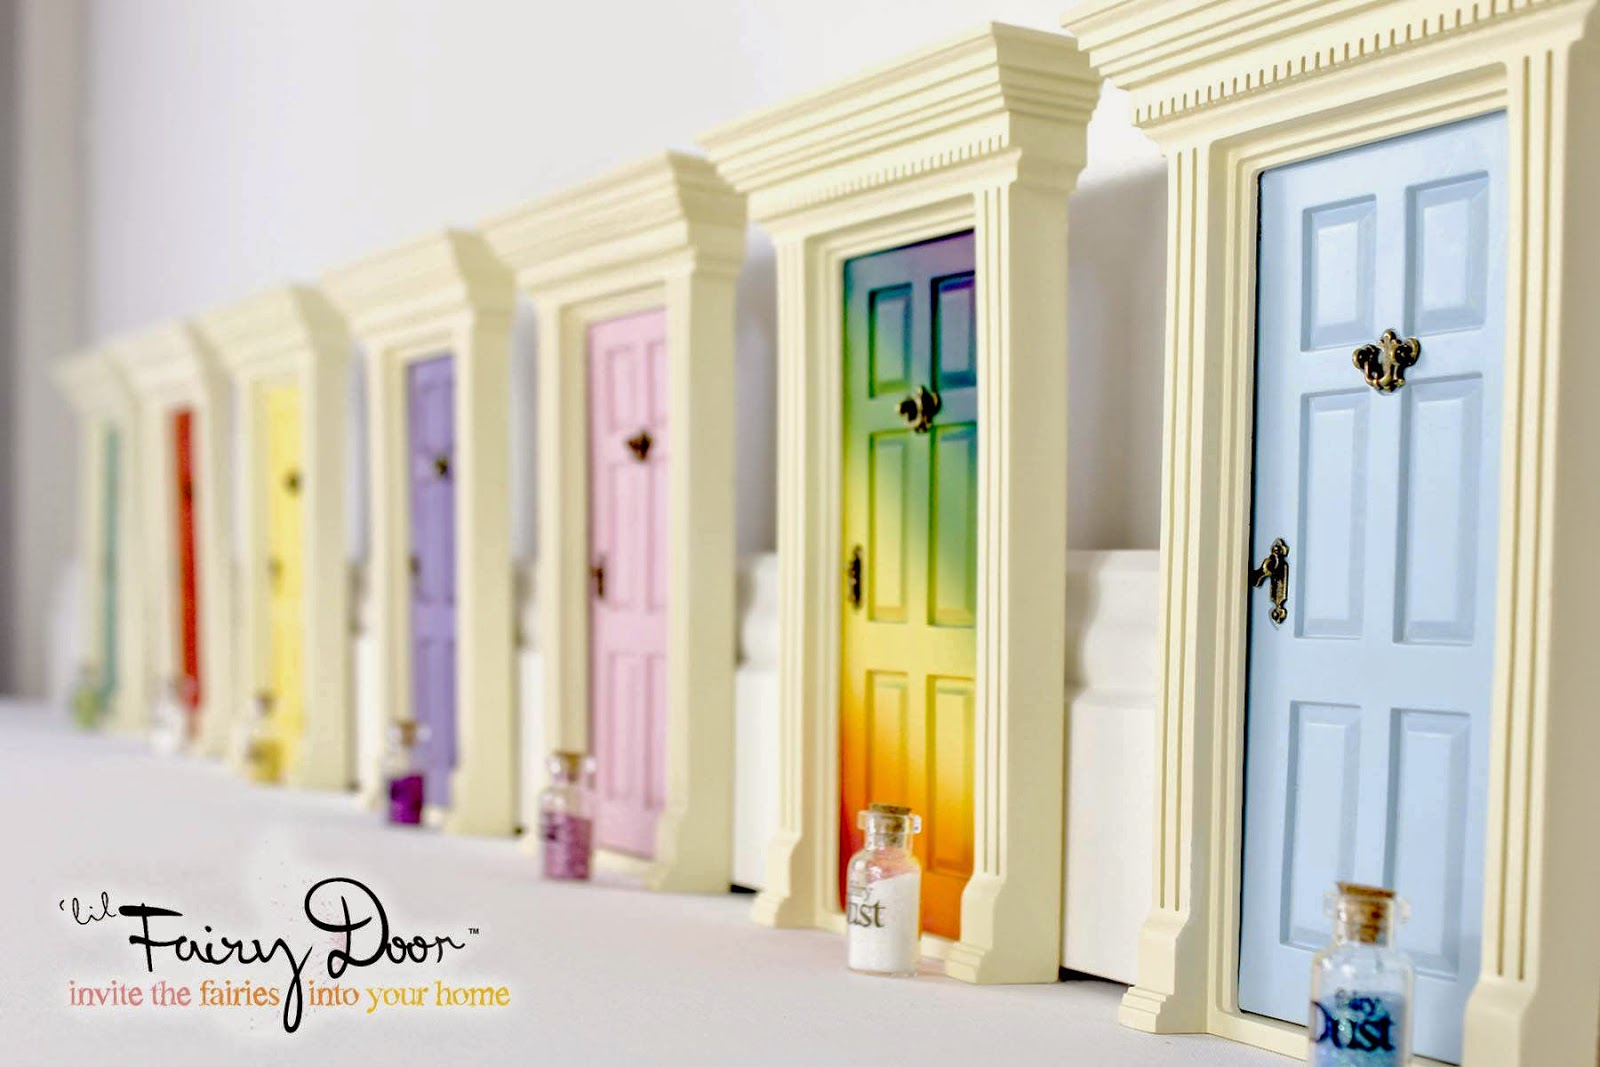 Sold in a rainbow of colors the Fairy Doors safely attach to any wall for the imaginative fairies to come visit their human princess or prince at night. & Let the Fairies in with The Lil Fairy Door - AnnMarie John